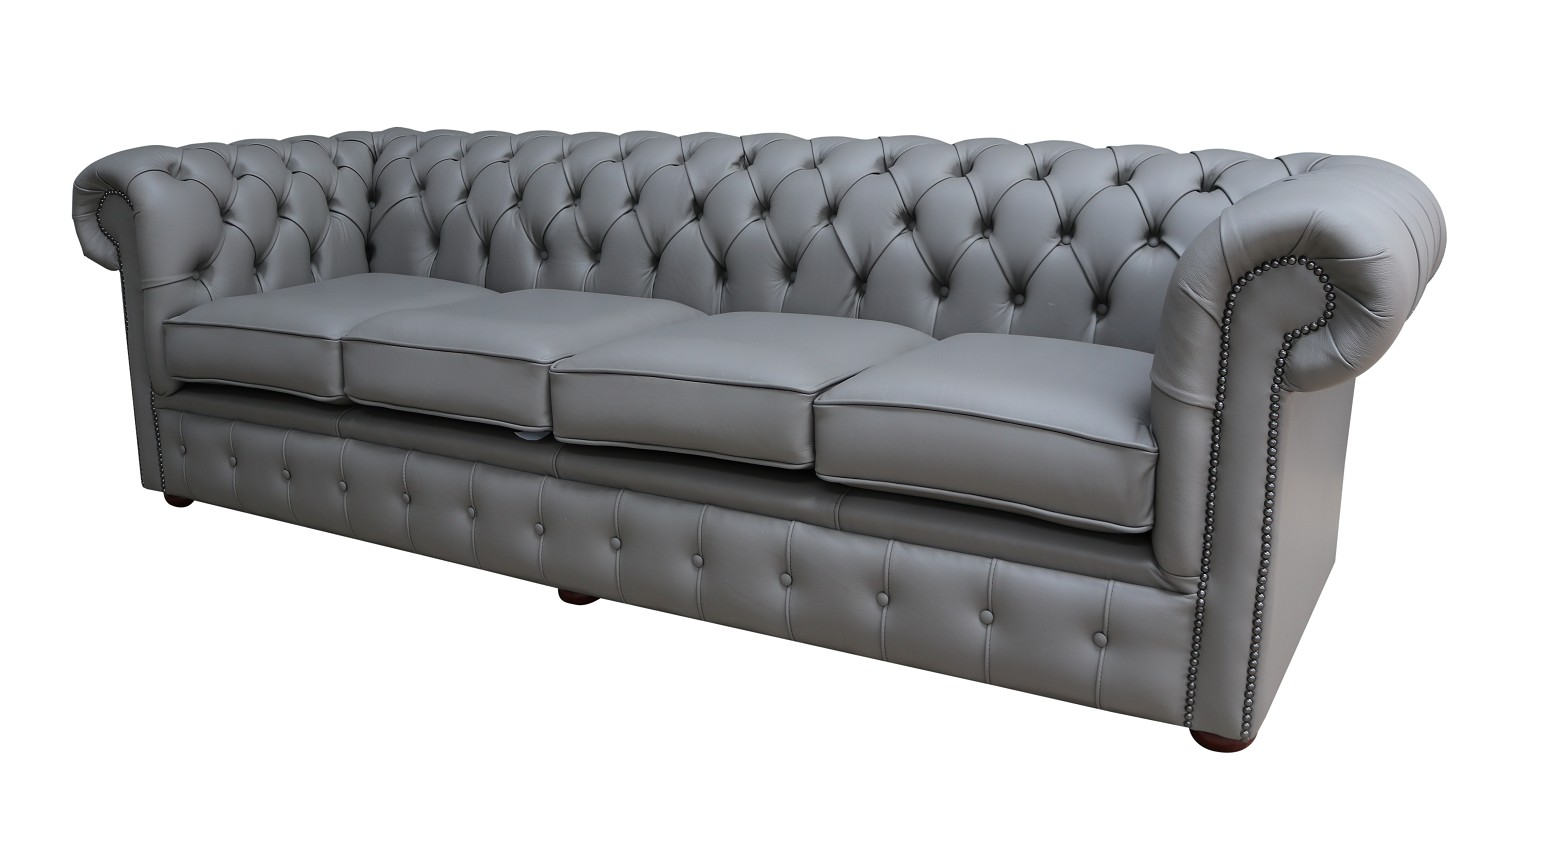 Chesterfield Uk Handmade 4 Seater Settee Couch Silver Grey Real Leather Sofa Ebay